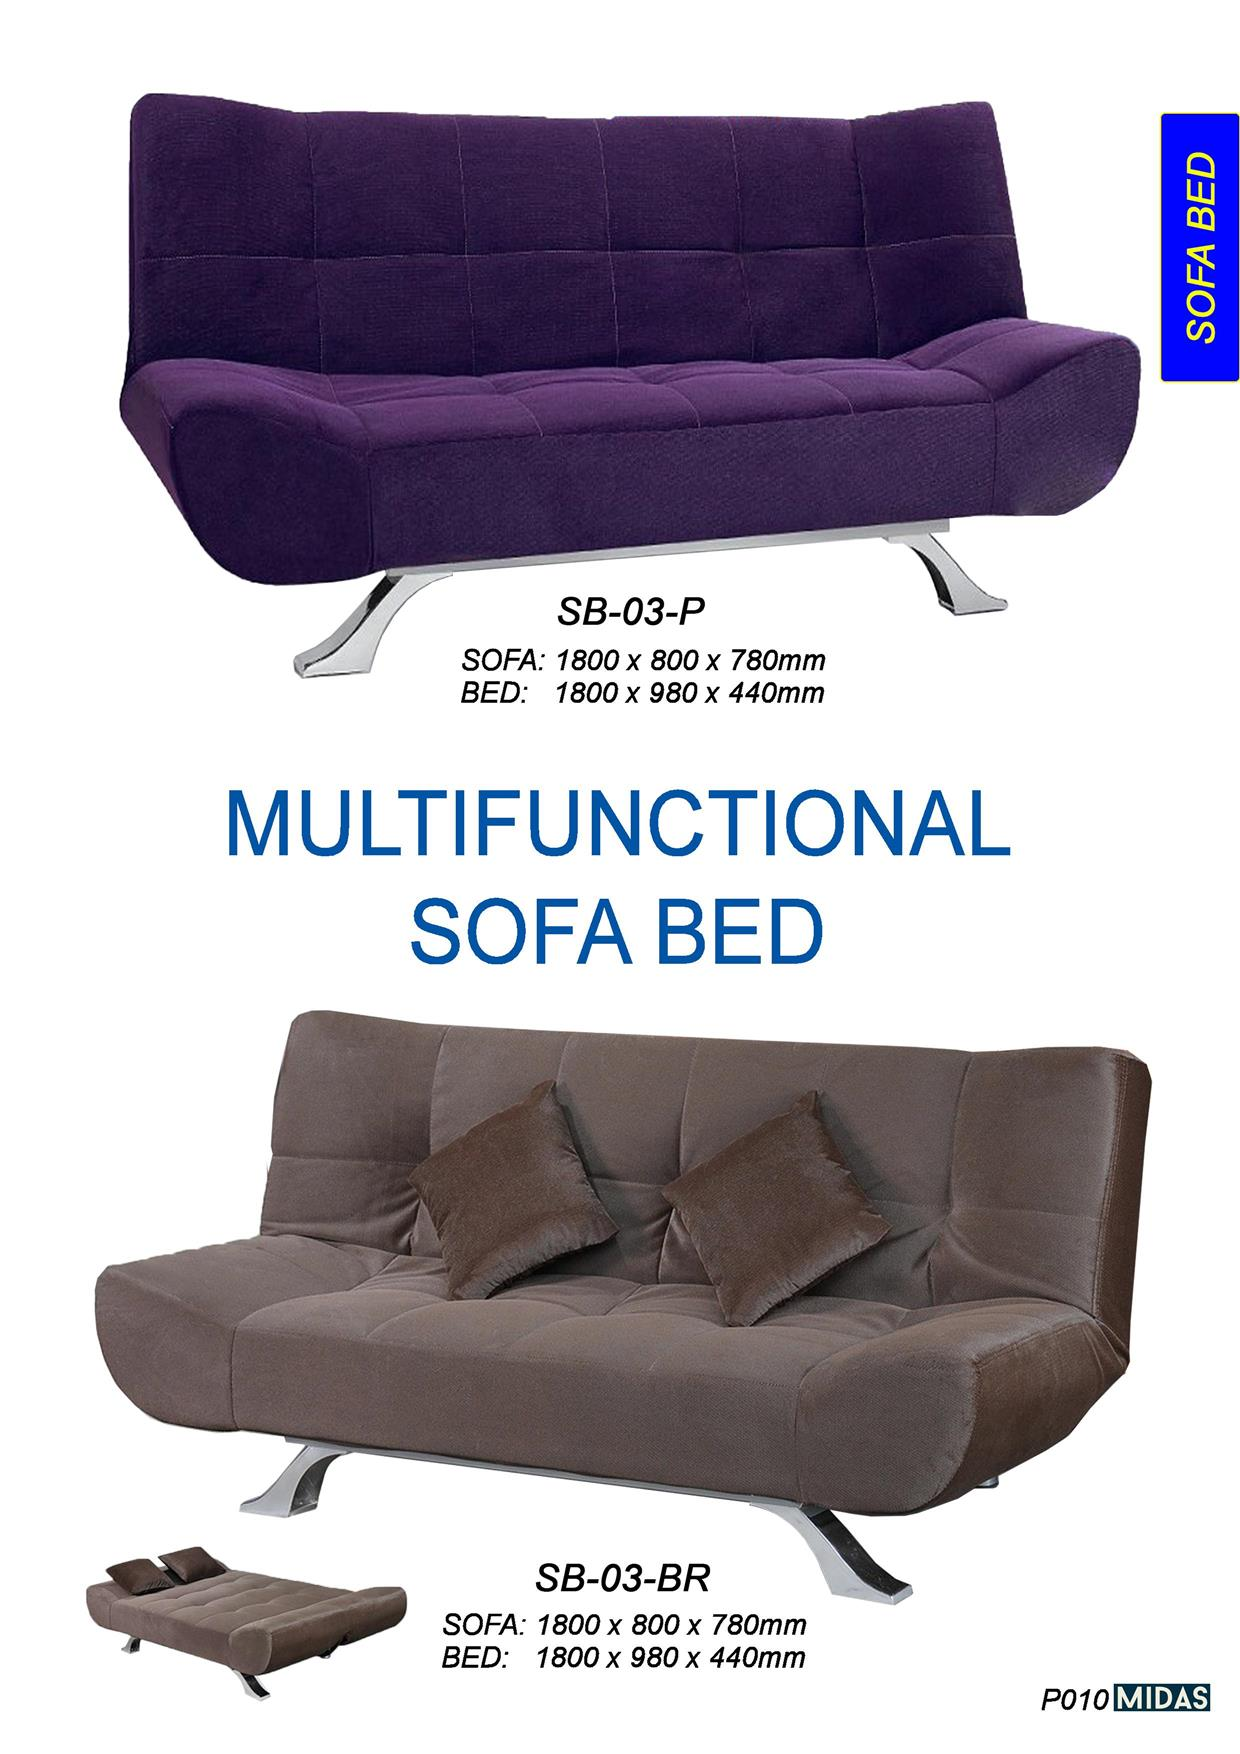 Folding Double Guest Bed With Mattress Foldable Mattress Foldable Double Bed Mattress